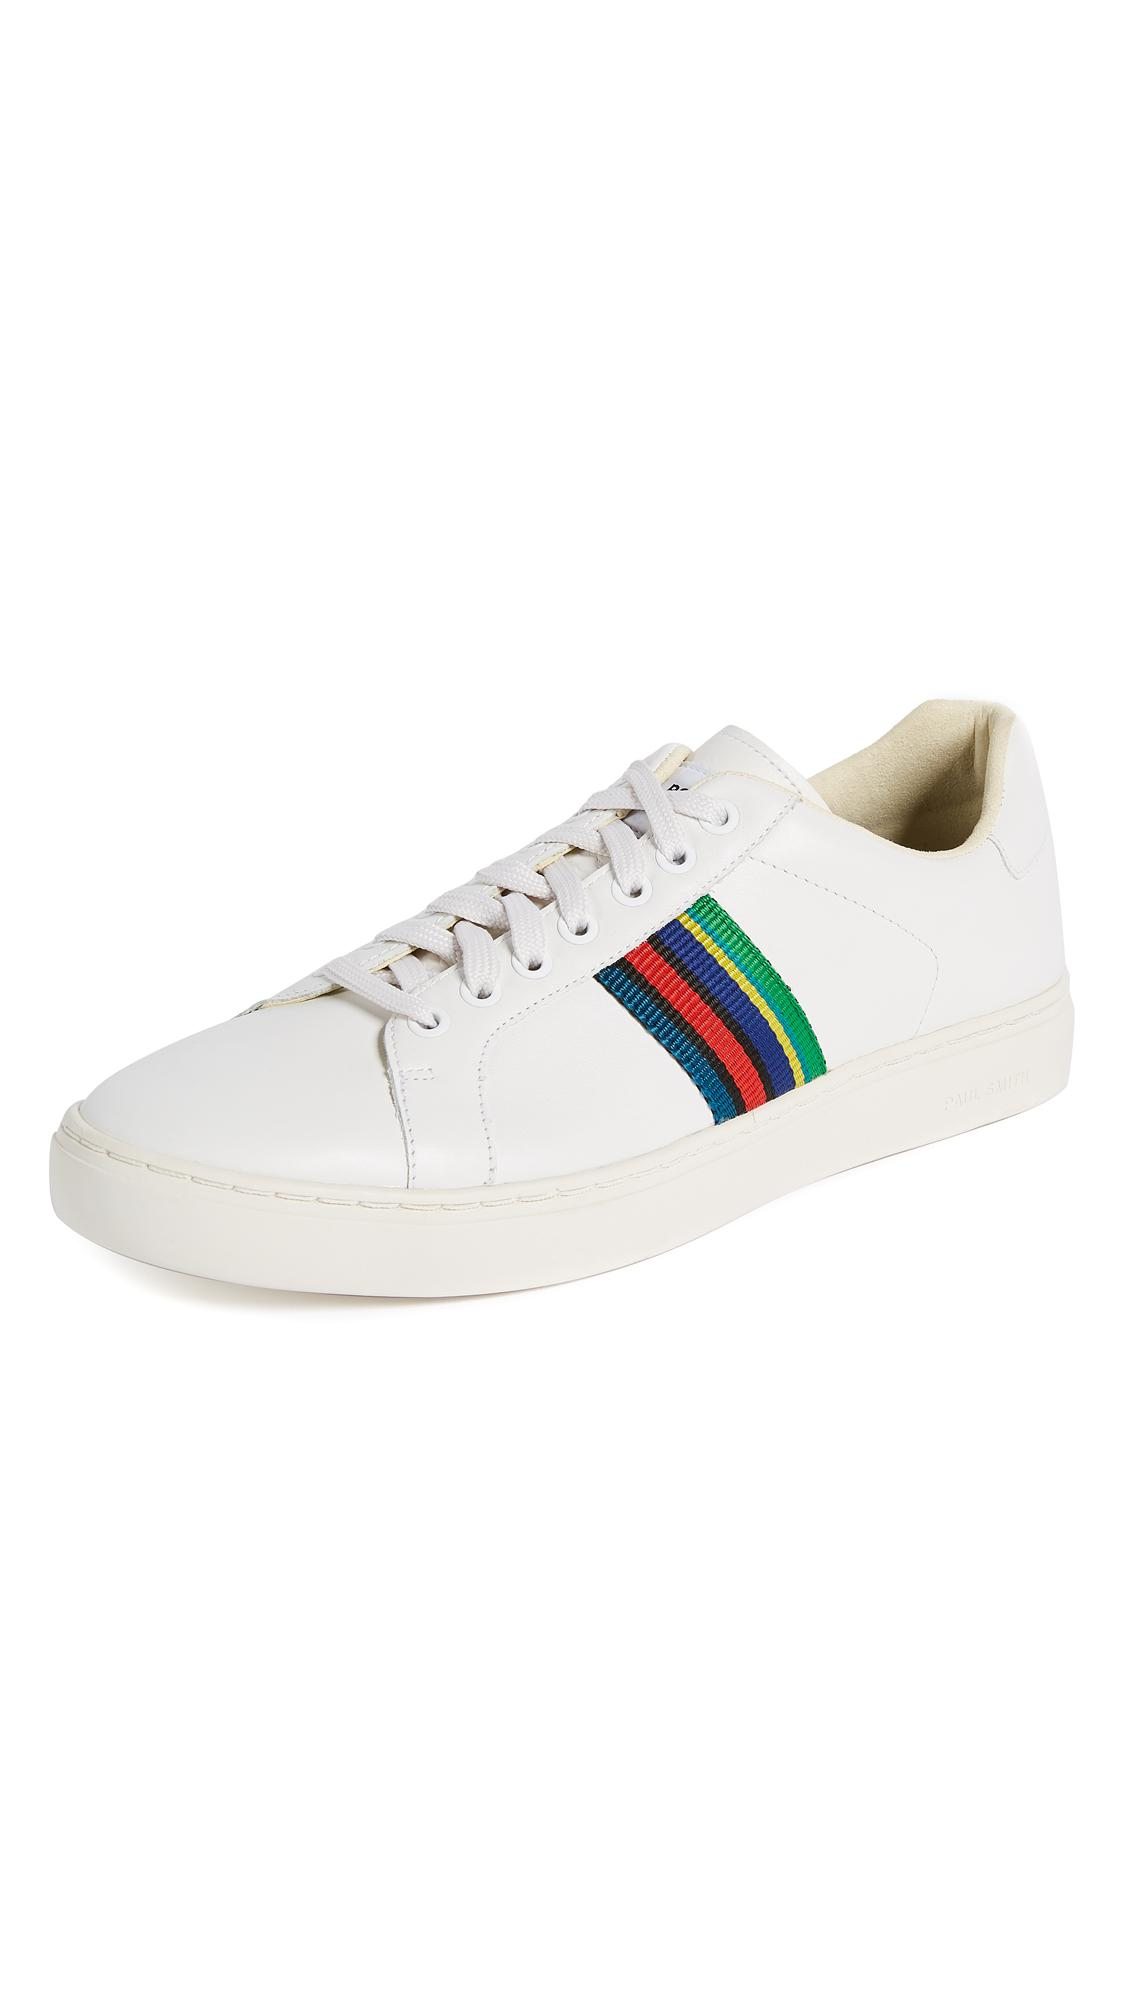 PS by Paul Smith Black Lapin Sneakers rr6vD